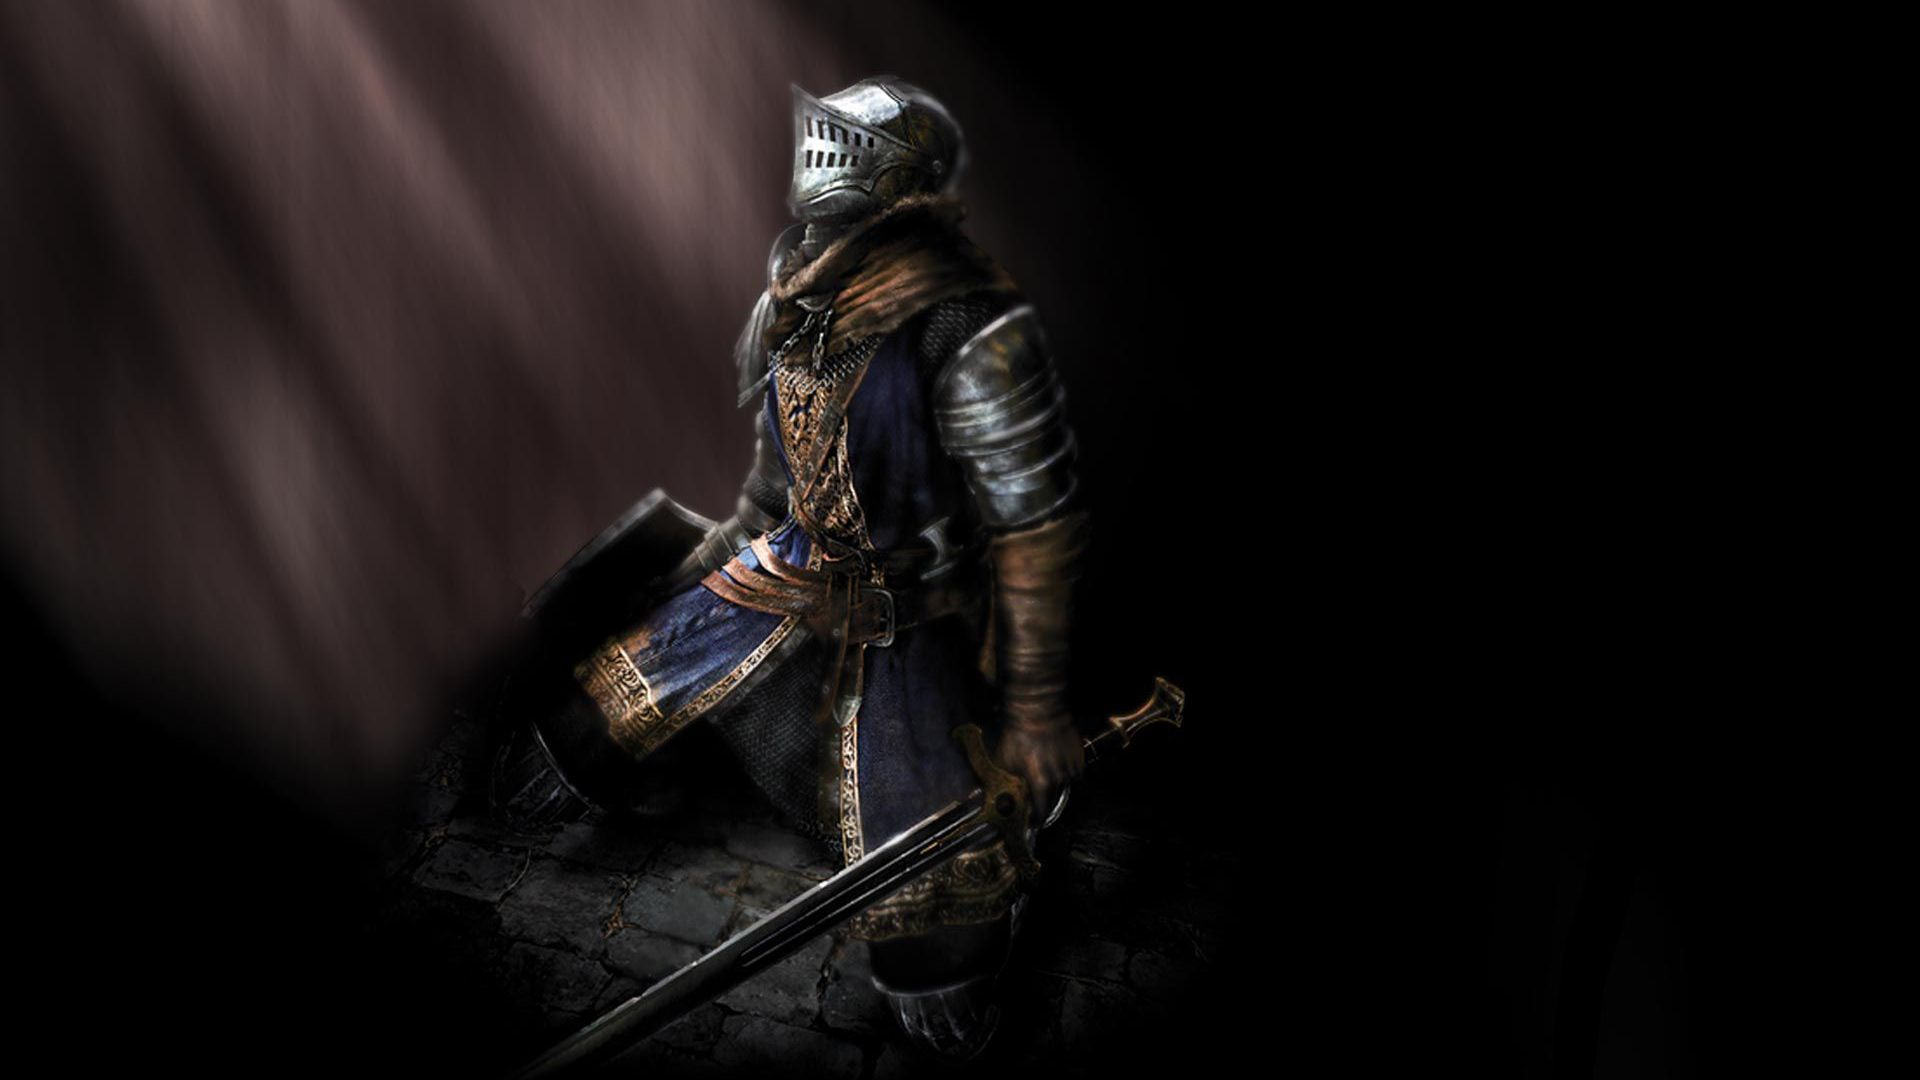 dark souls wallpaper breaking - photo #27